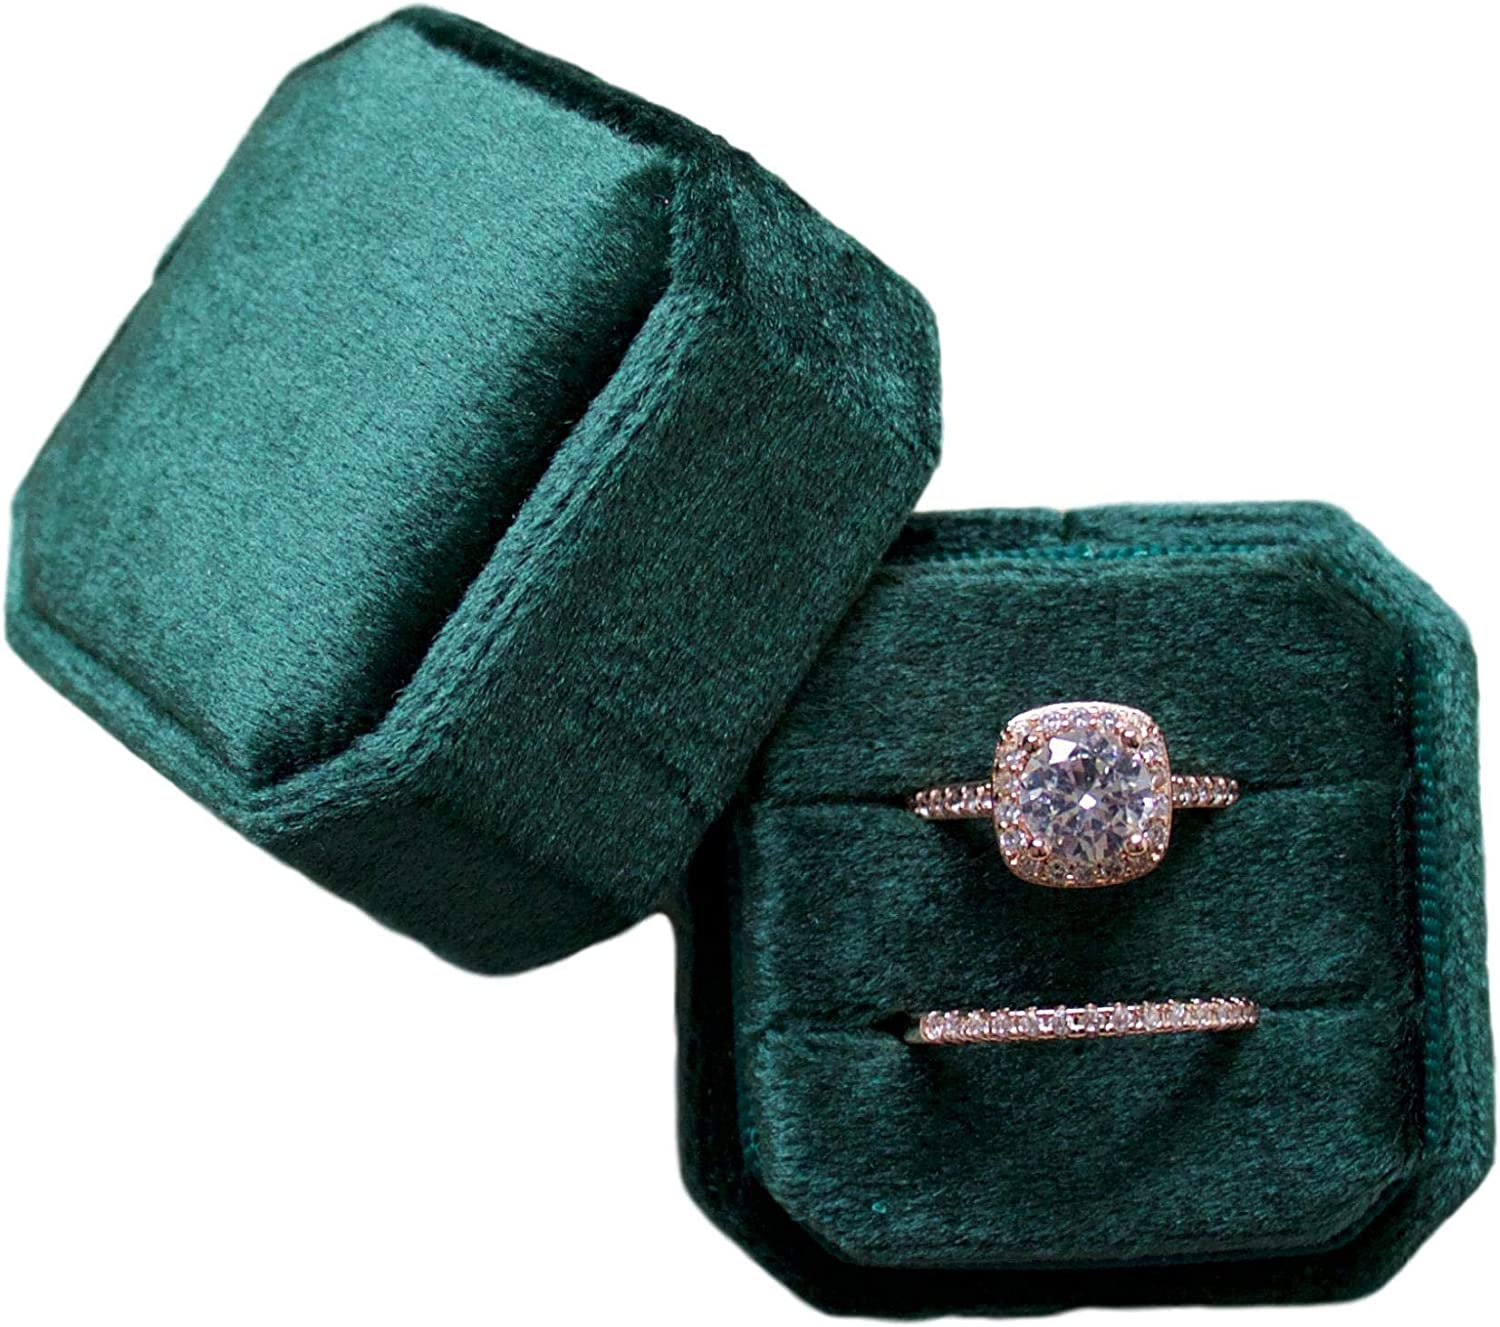 Marble Wolf Velvet Ring Box double slot Vintage Inspired - Octagon Square Ring Box - Perfect for Engagement Bride Wedding Photography - Bridal Gift for Mrs. (Emerald)